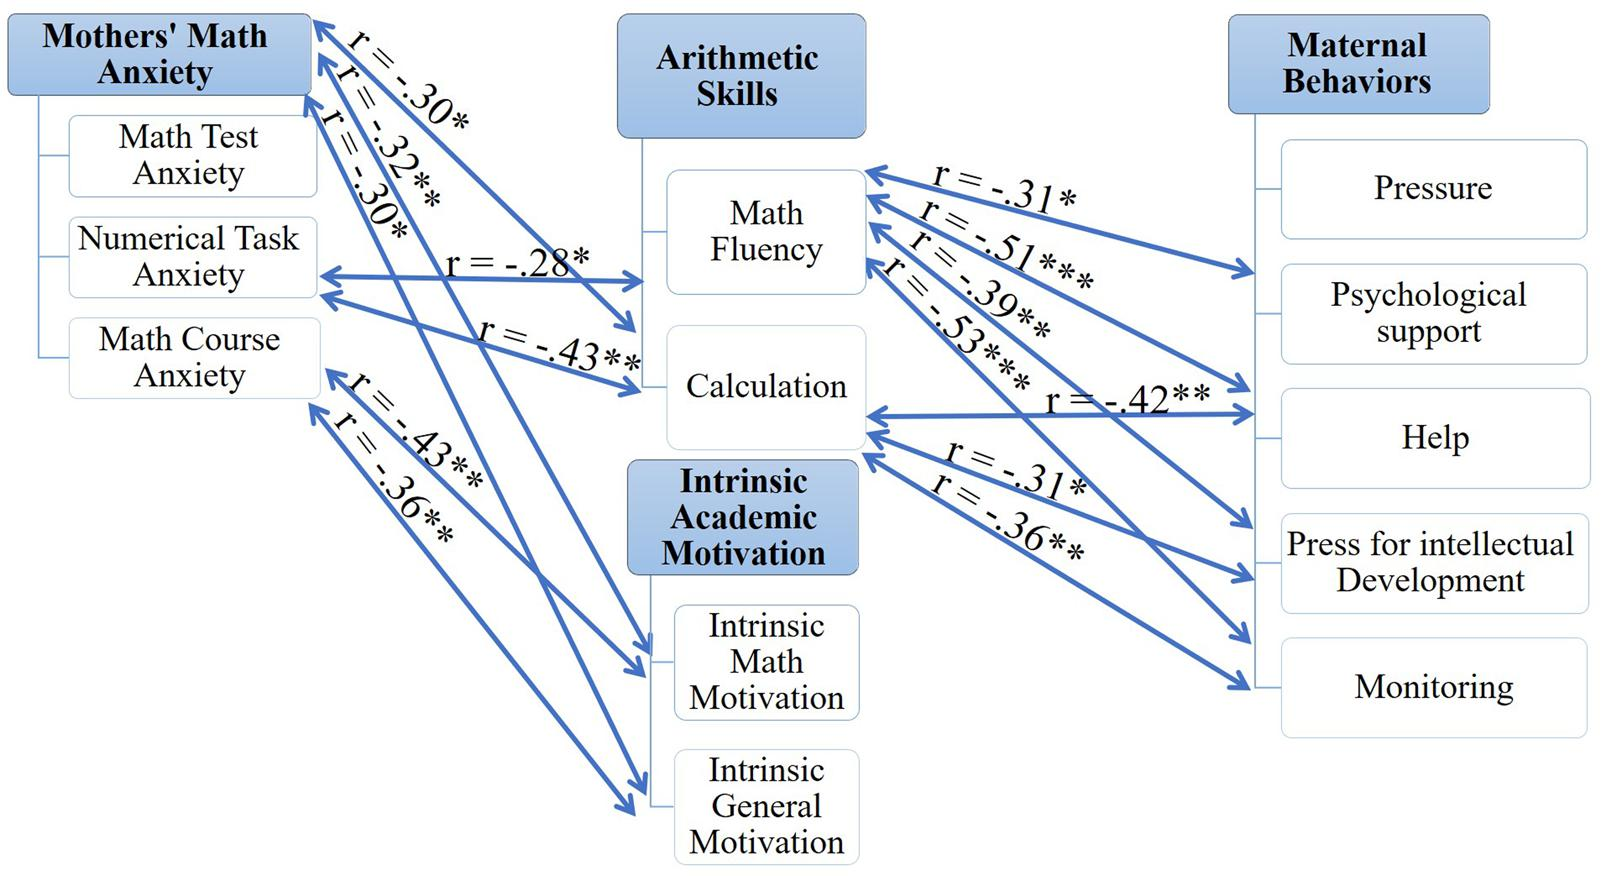 Frontiers | Mothers, Intrinsic Math Motivation, Arithmetic